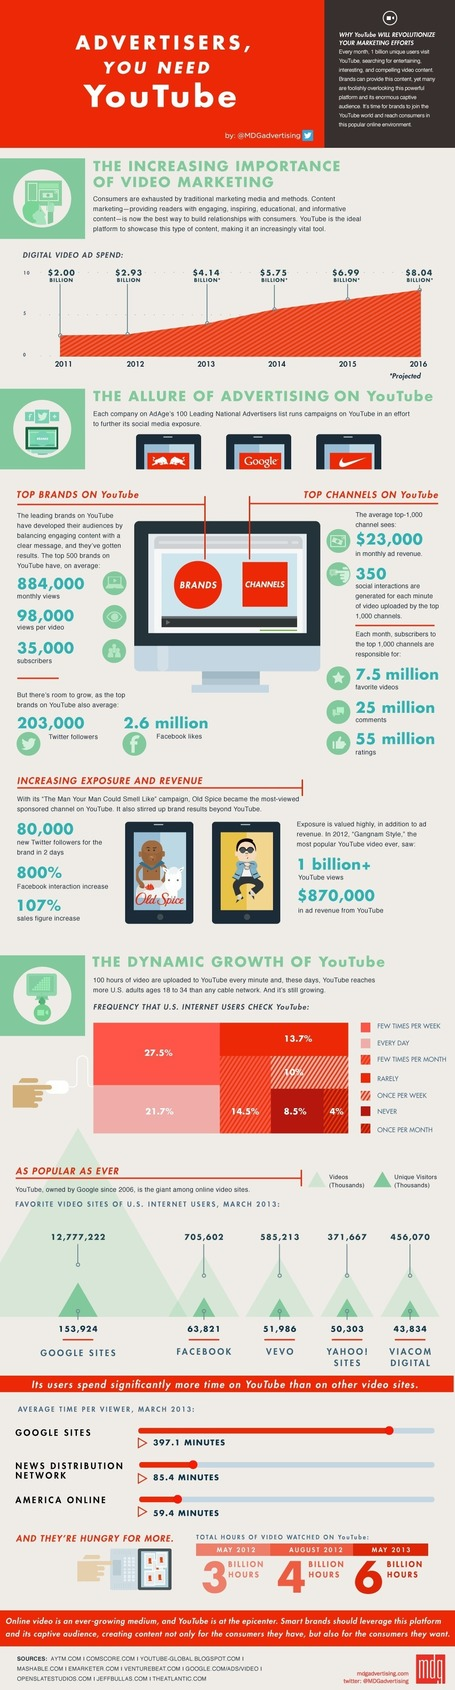 Why Advertisers Need YouTube [INFOGRAPHIC] | Connected Media (English & Francais) | Scoop.it